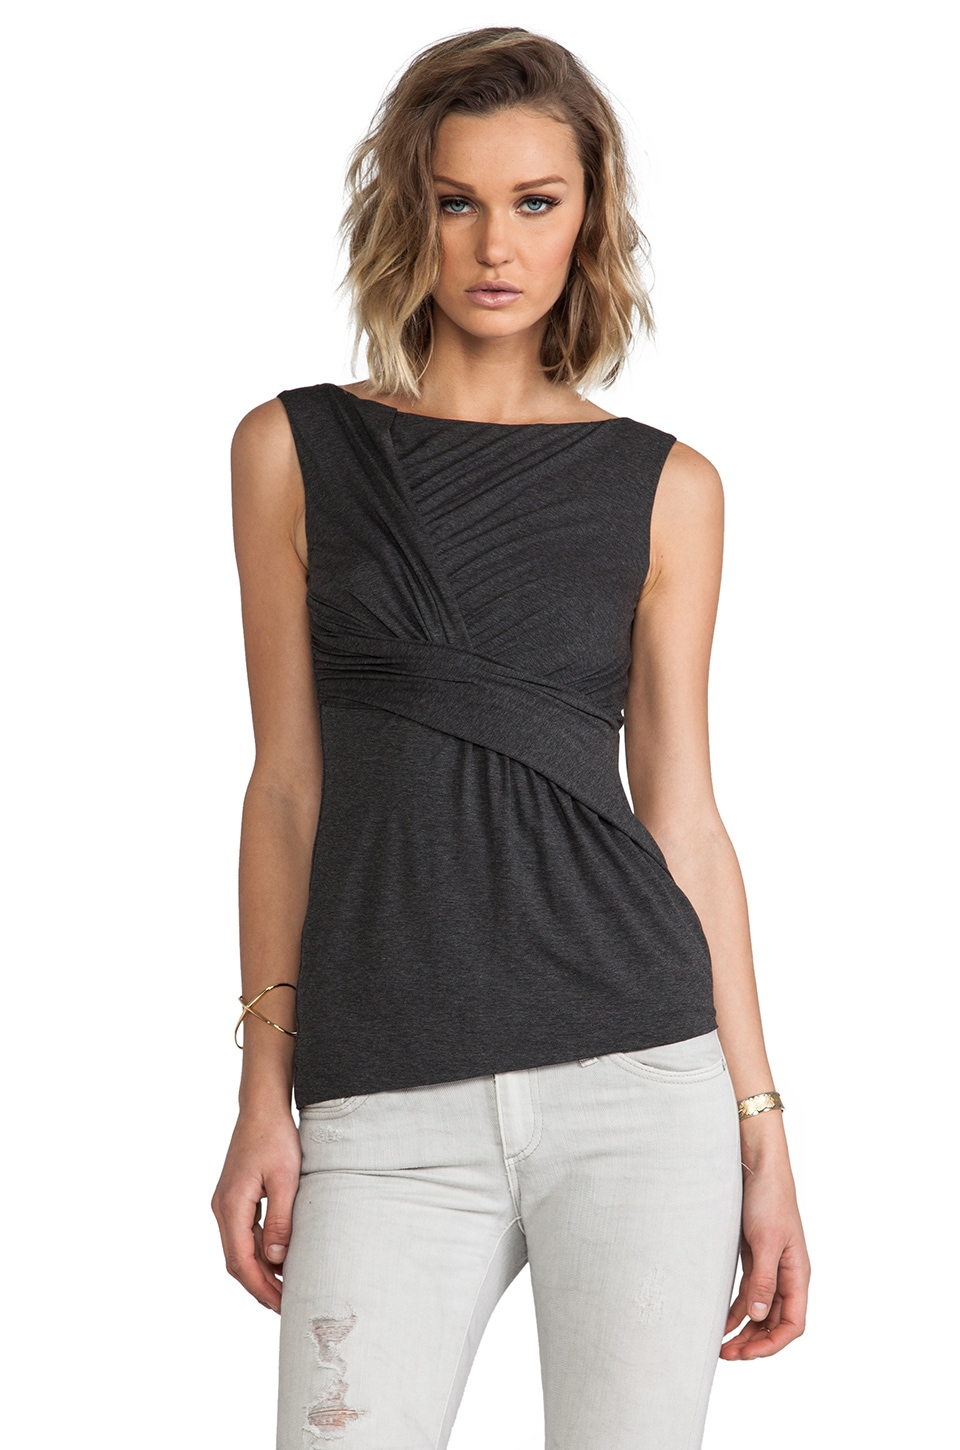 Bailey 44 Lana Top in Charcoal